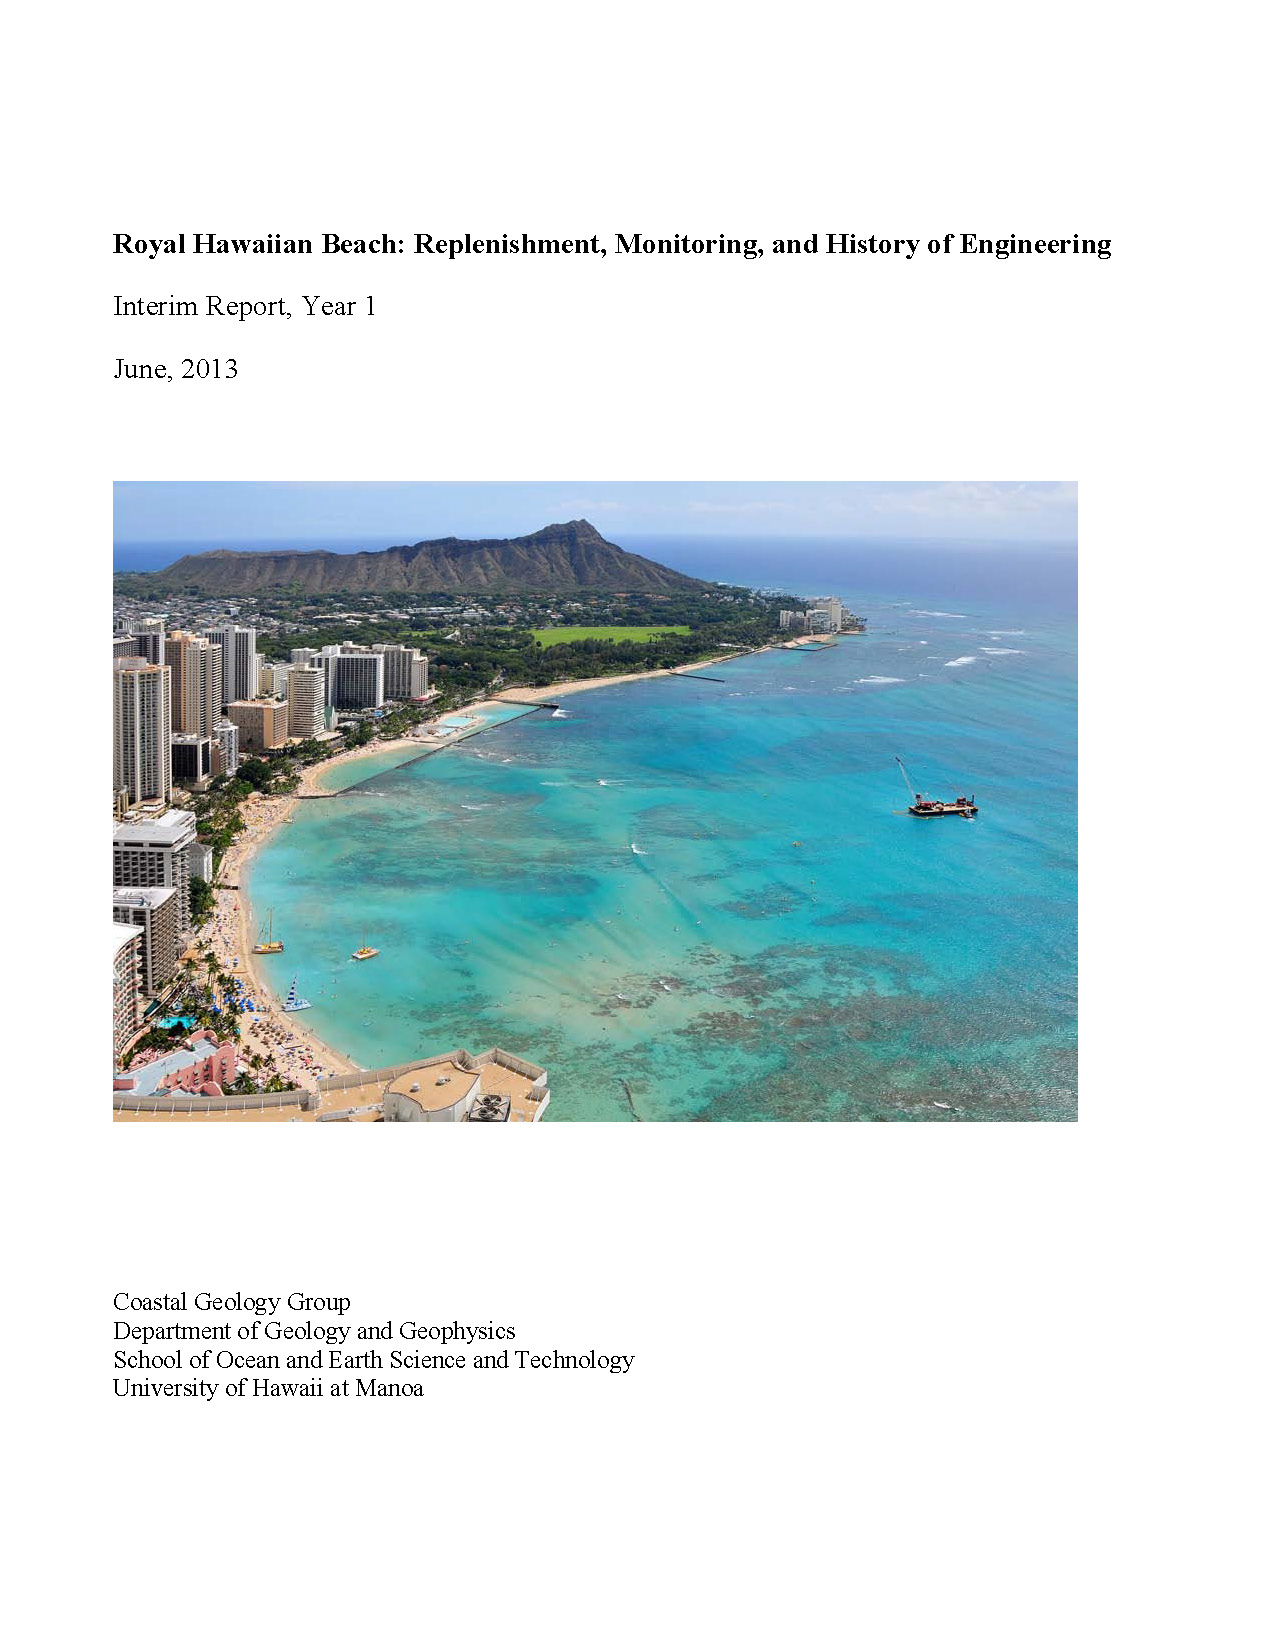 Cover from REPORT-Royal-Hawaiian-Beach-6_13.jpg